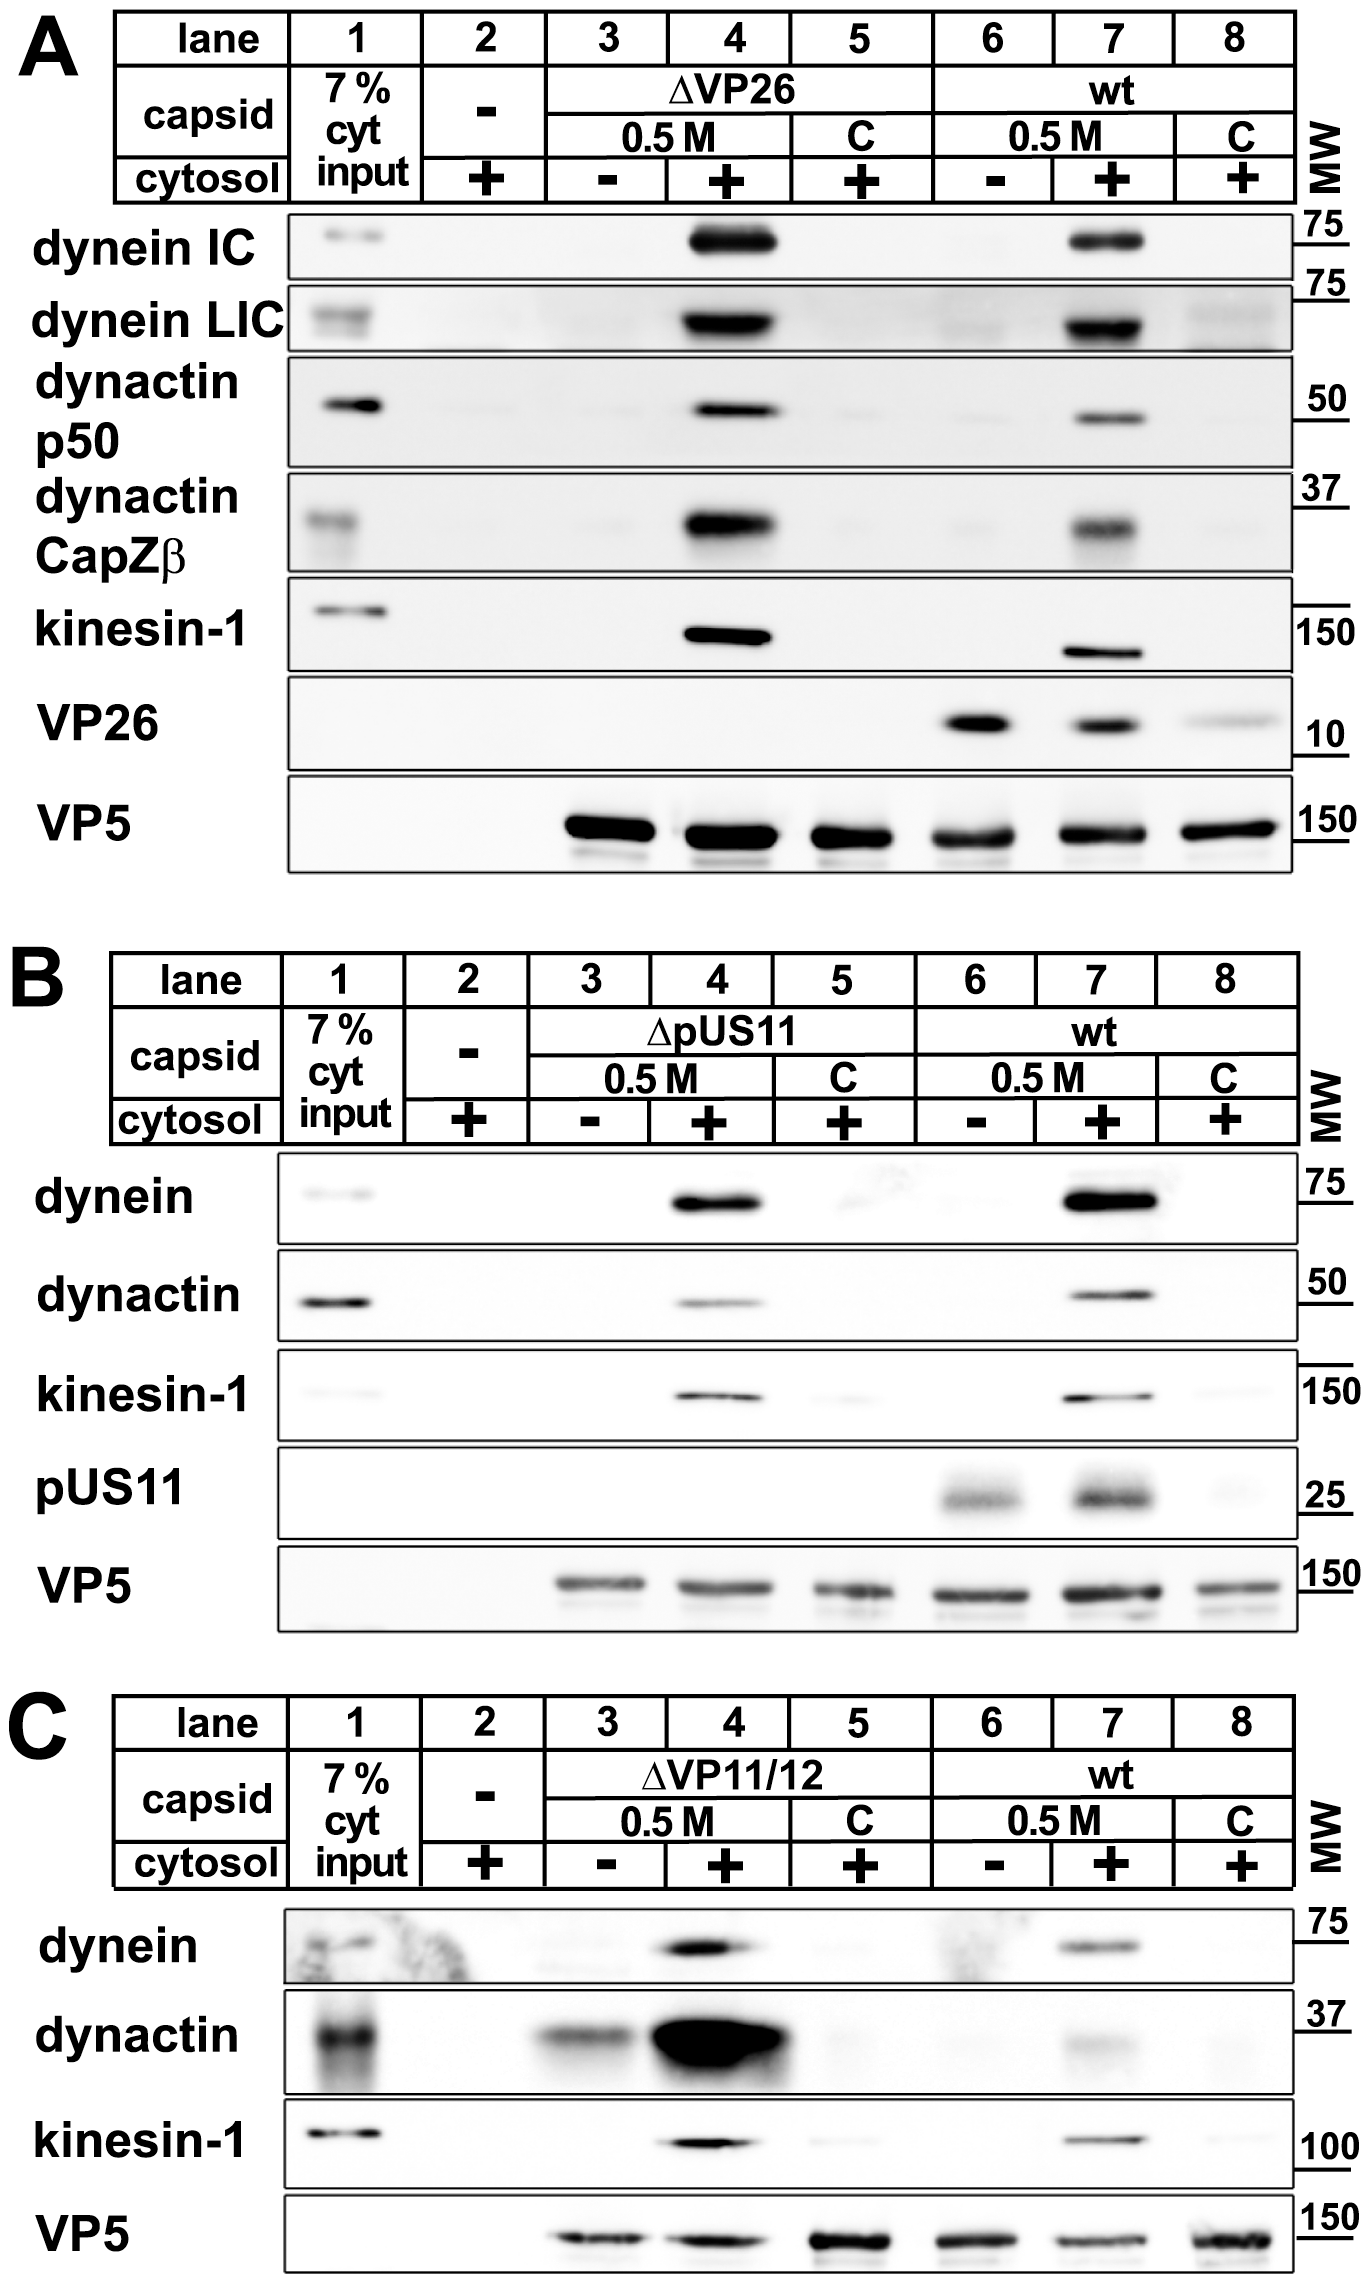 MAPs bind to HSV1 capsids lacking VP26, pUS11, or VP11/12.